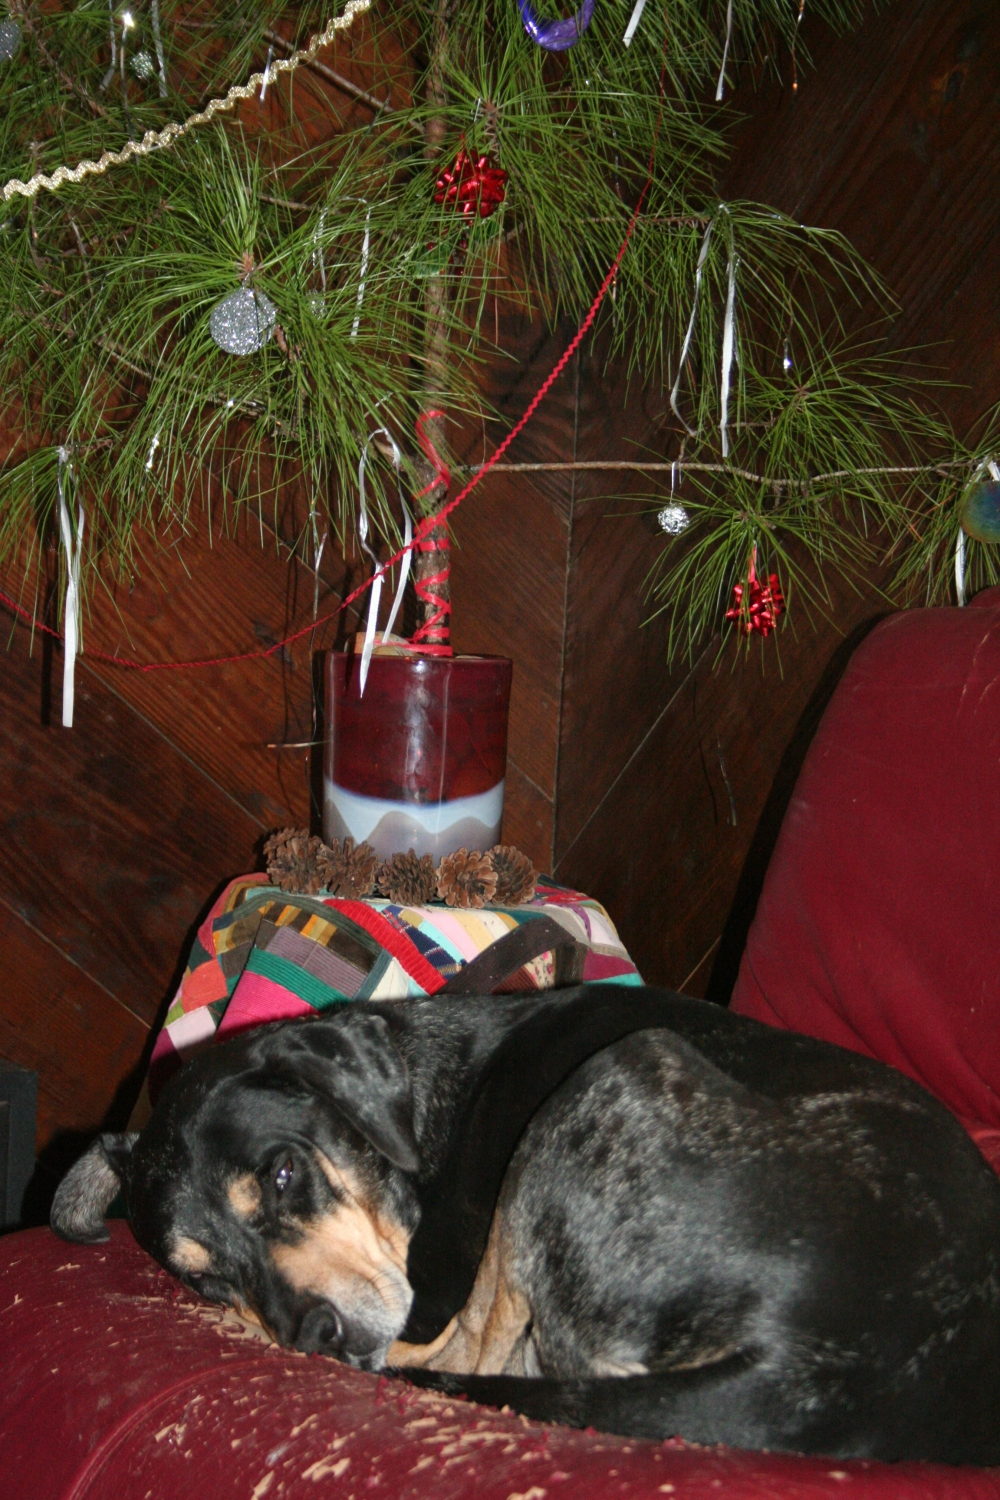 A hound dog under the xmas tree